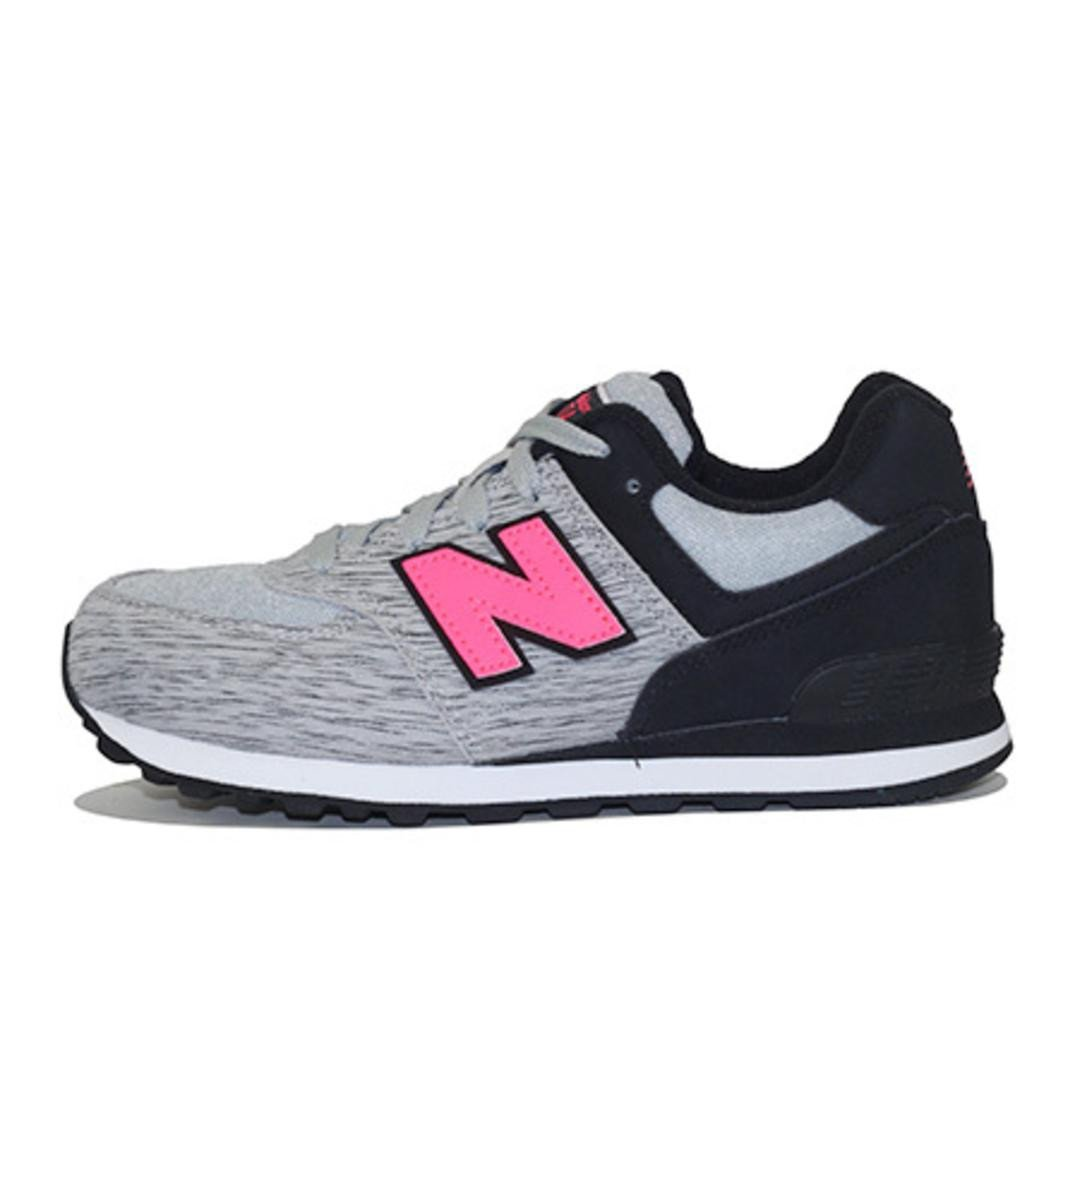 New Balance for Pre-School: 574 Sweatshirt Grey Sneakers